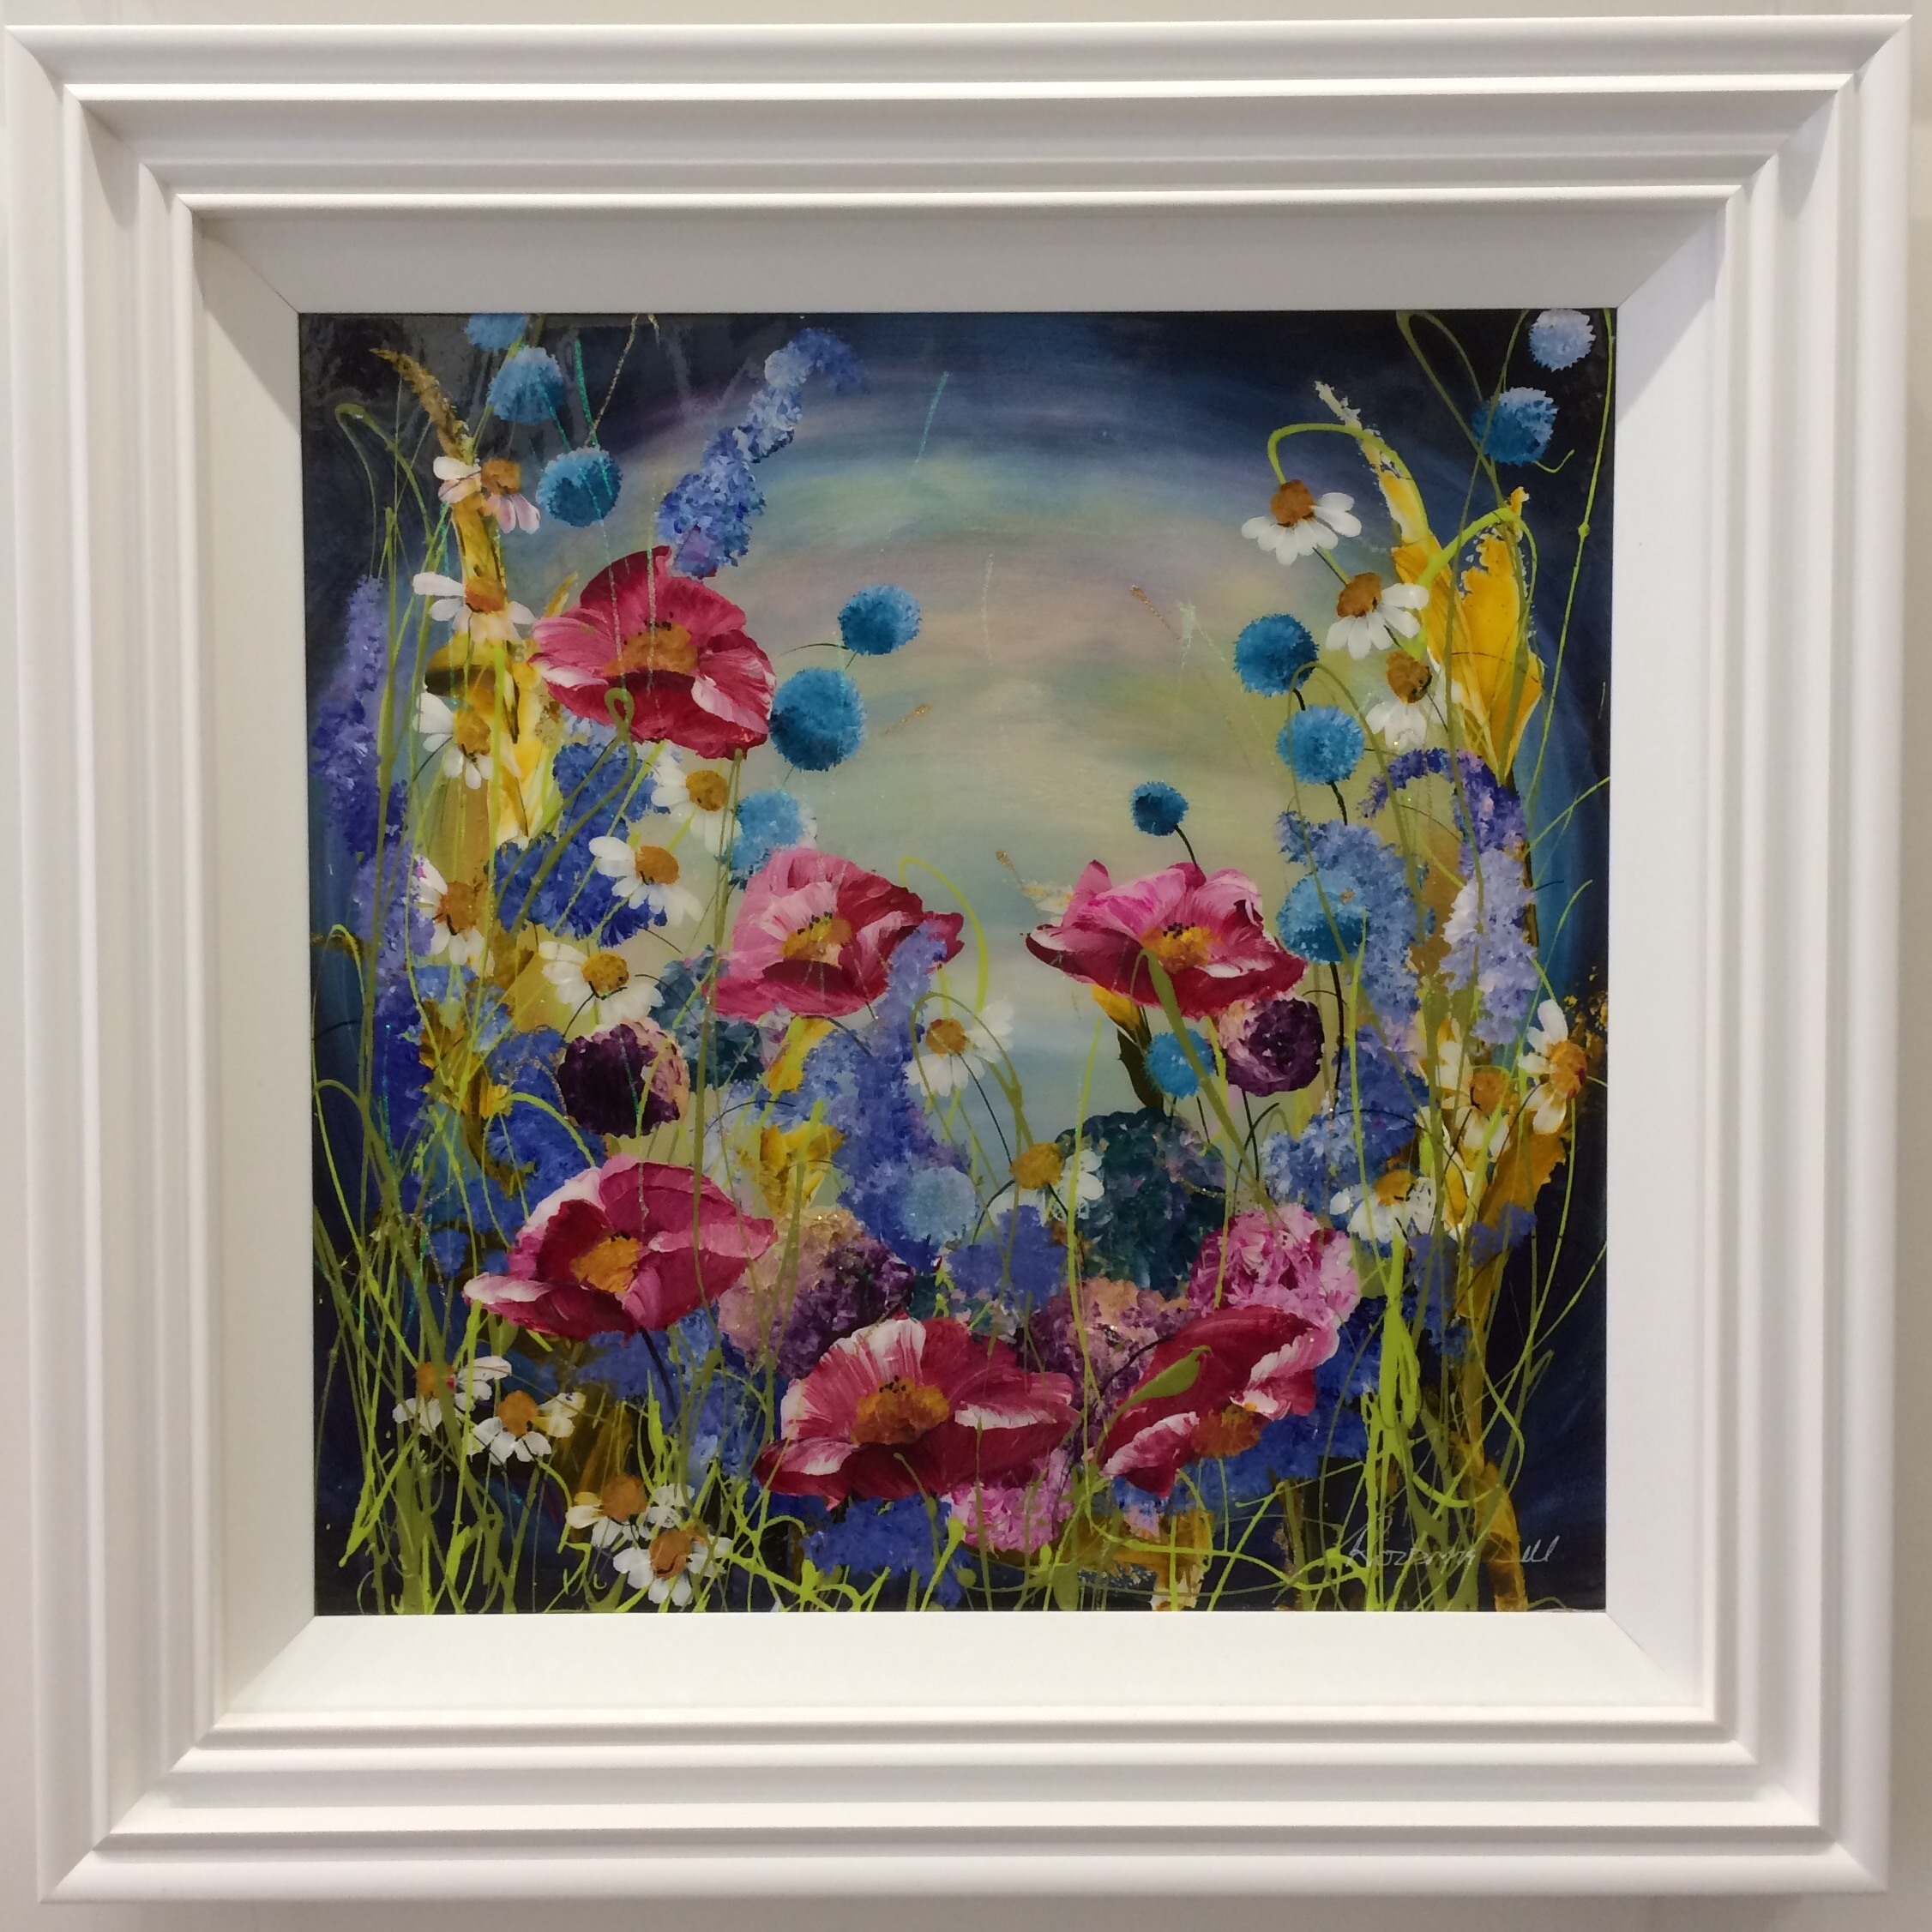 Floral 24 x 24 by Roz Bell